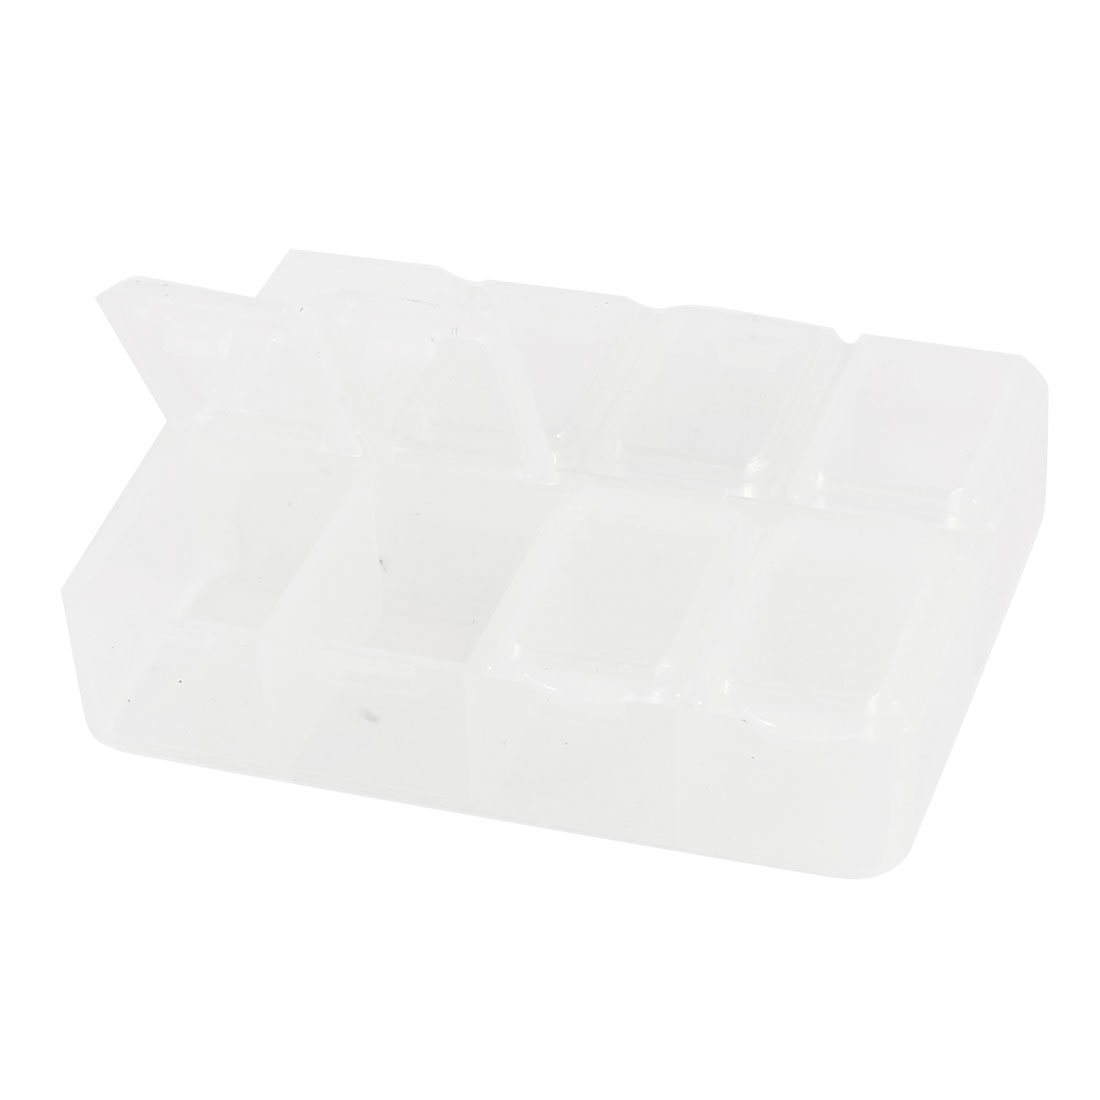 Rectangular Plastic 8 Slots Component Storage Case Box Container Clear White